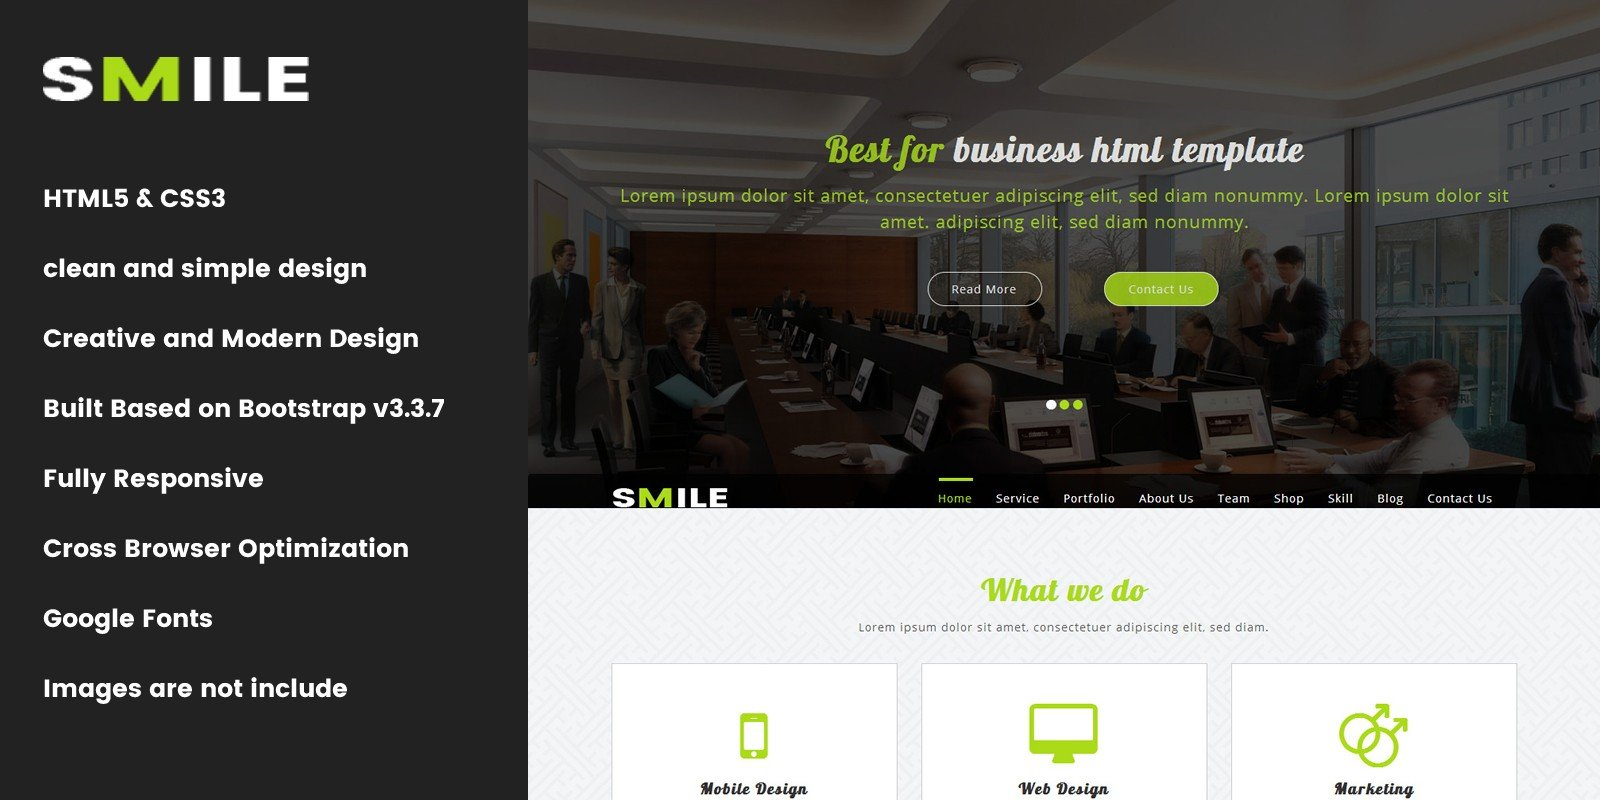 Smile - Onepage Parallax Business Template